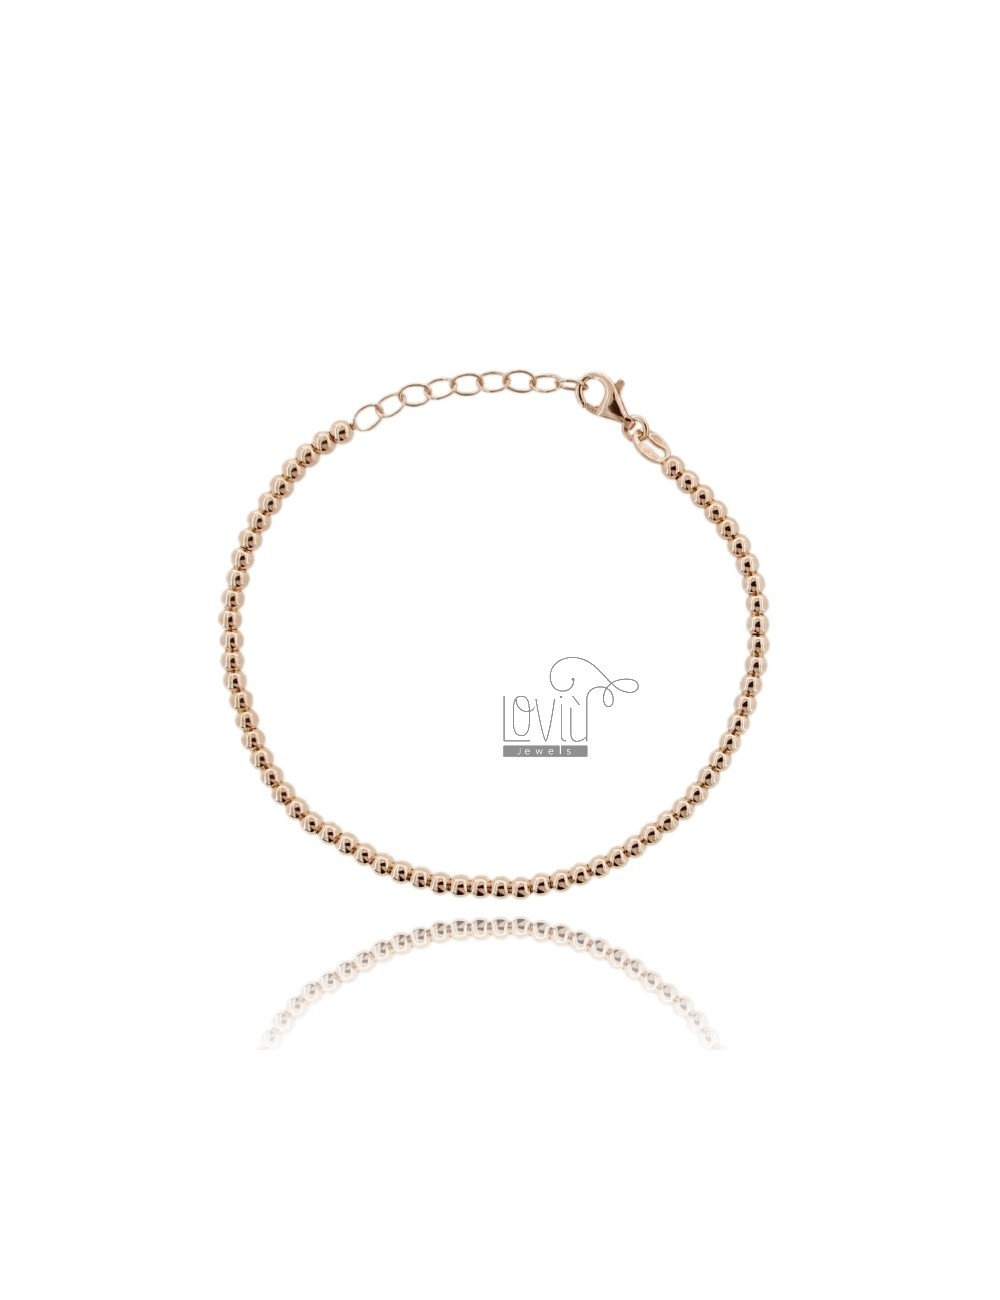 BRACELET BALL 3 MM SILVER PLATED ROSE GOLD 925 ‰ WITH CLOSURE